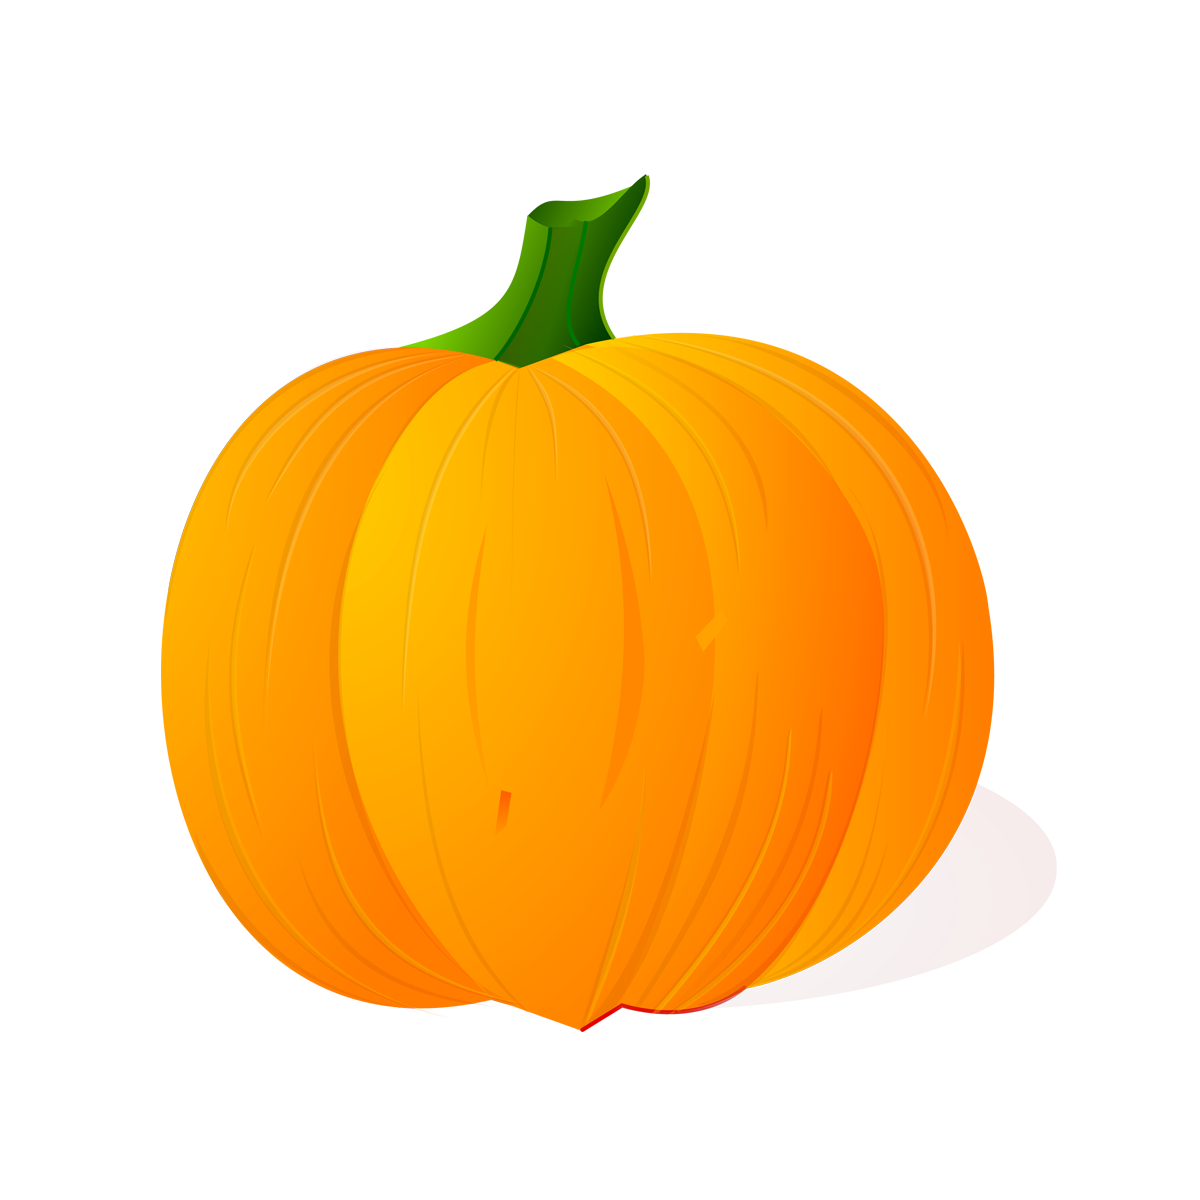 Free download high quality pumpkin vector png image